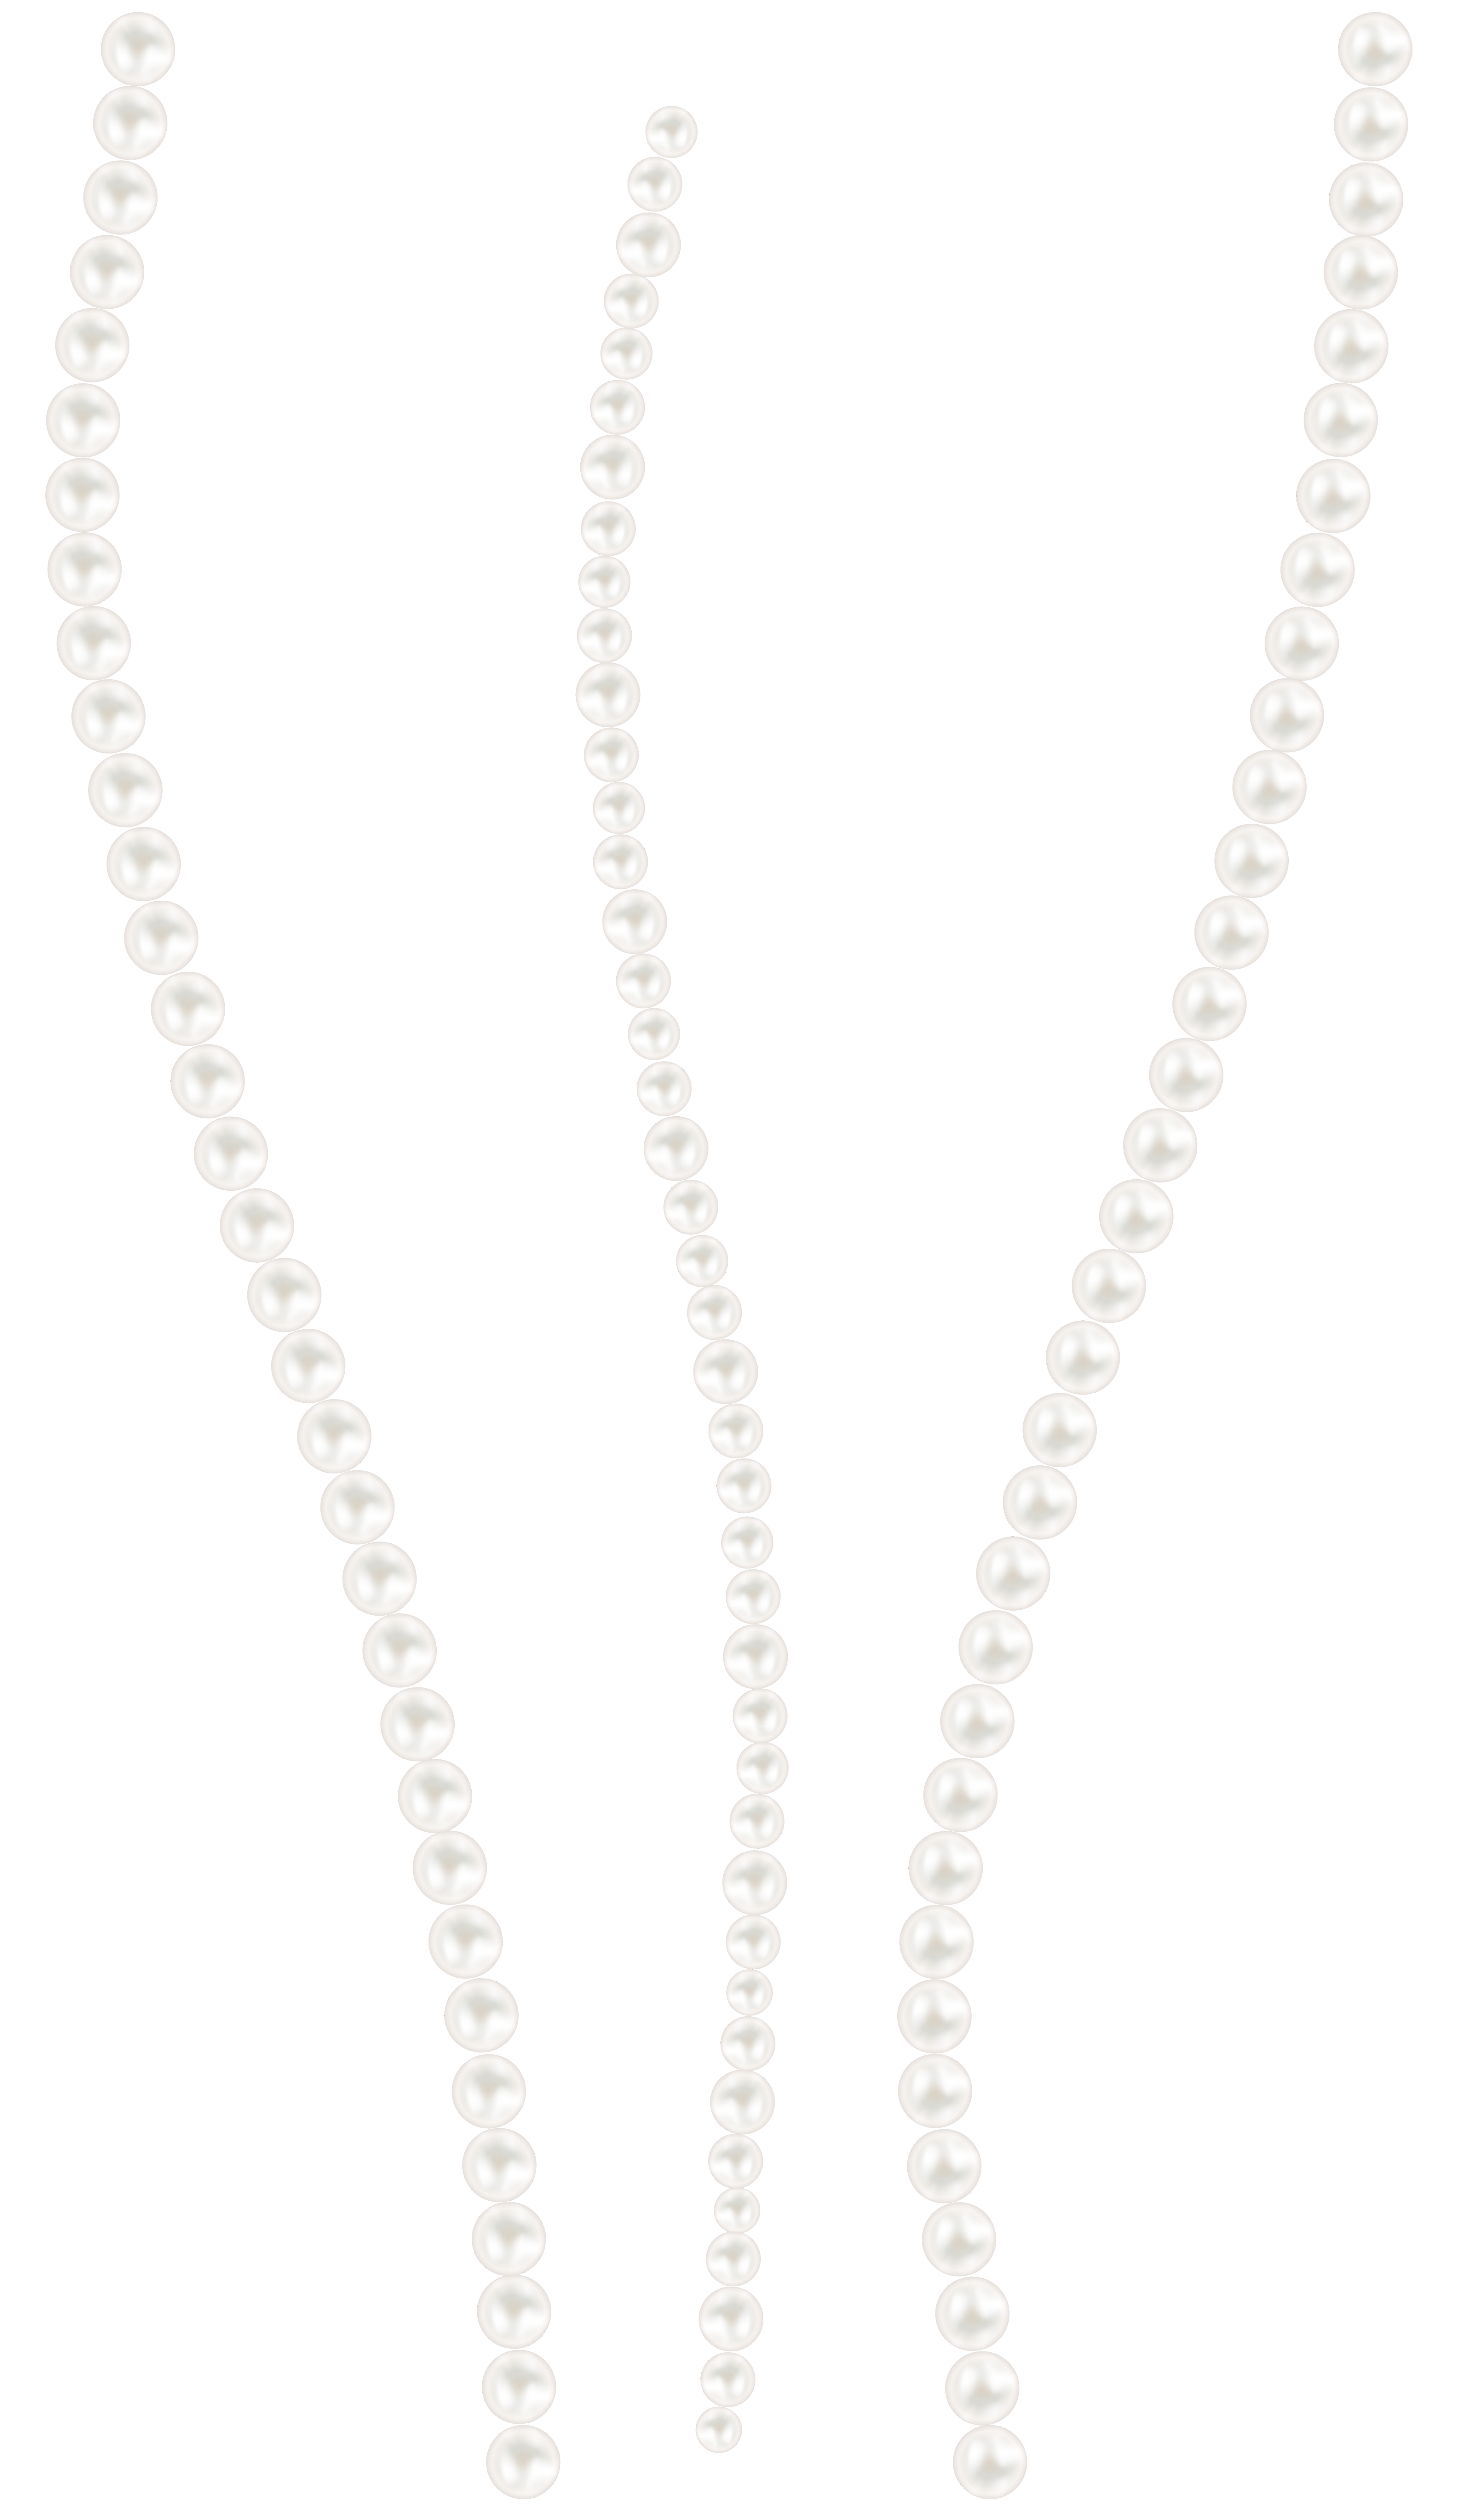 Transparent pearls full body. Pearl decor png clip